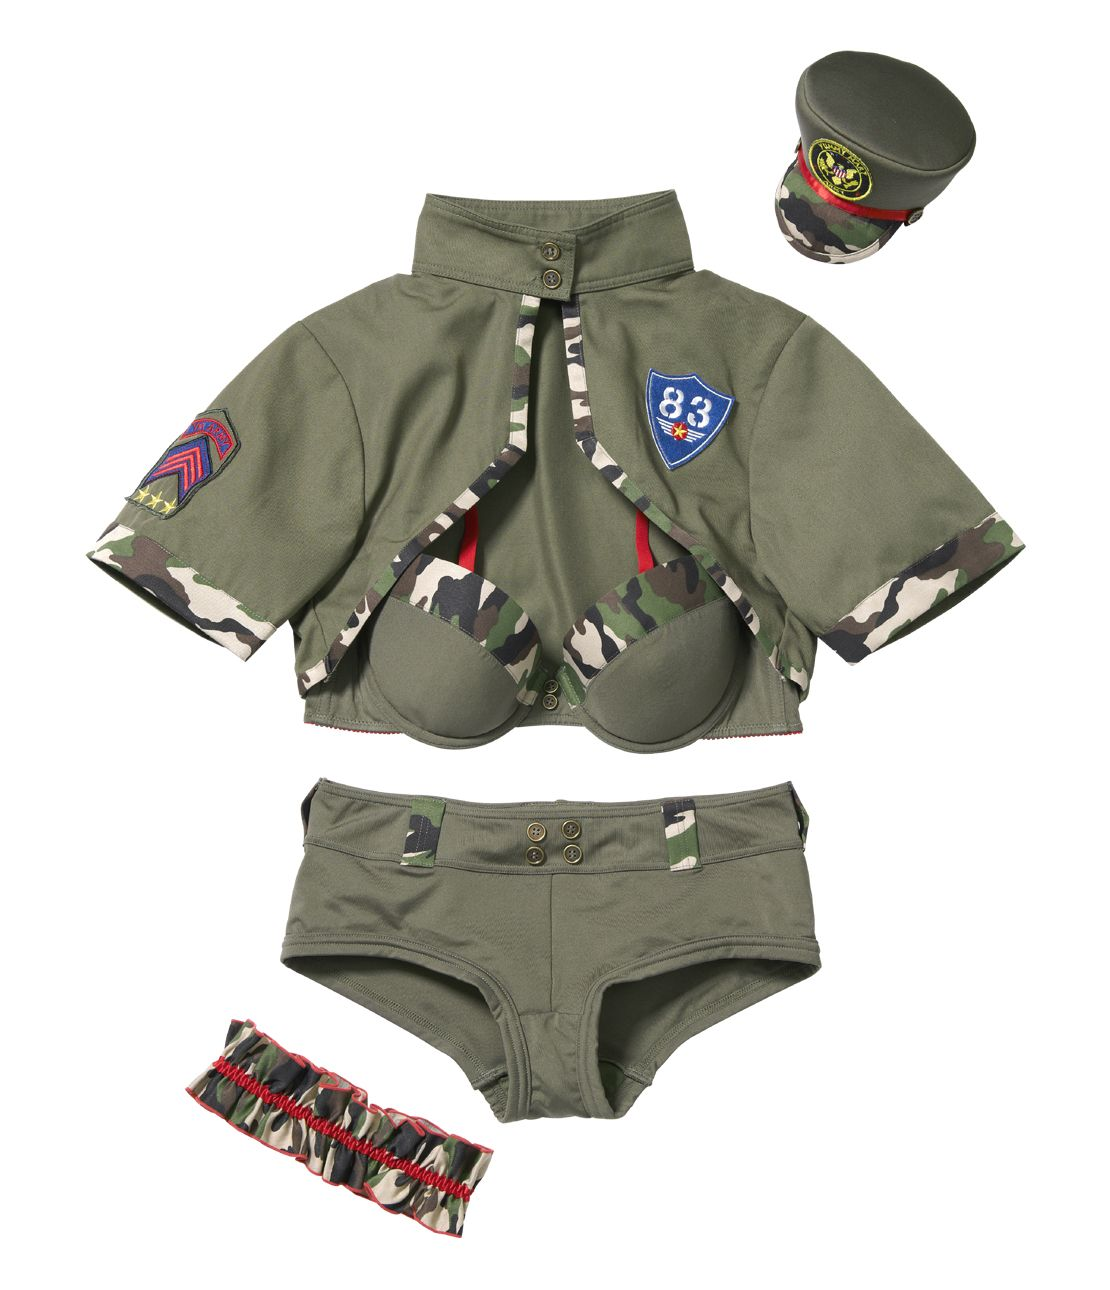 YM Army Bra Set